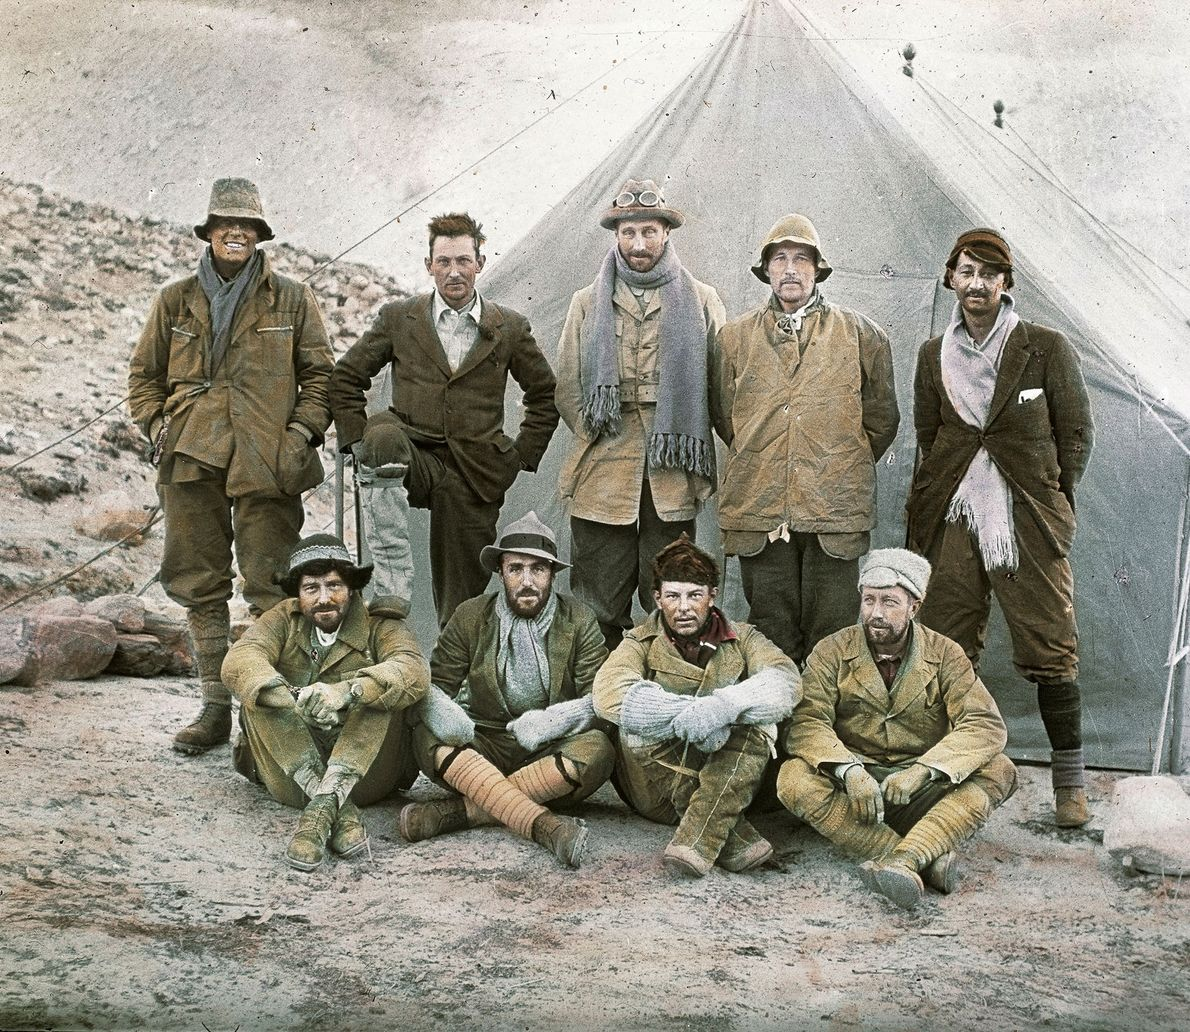 In 1924, George Mallory and an expedition team set off to conquer Mount Everest. Mallory vanished ...